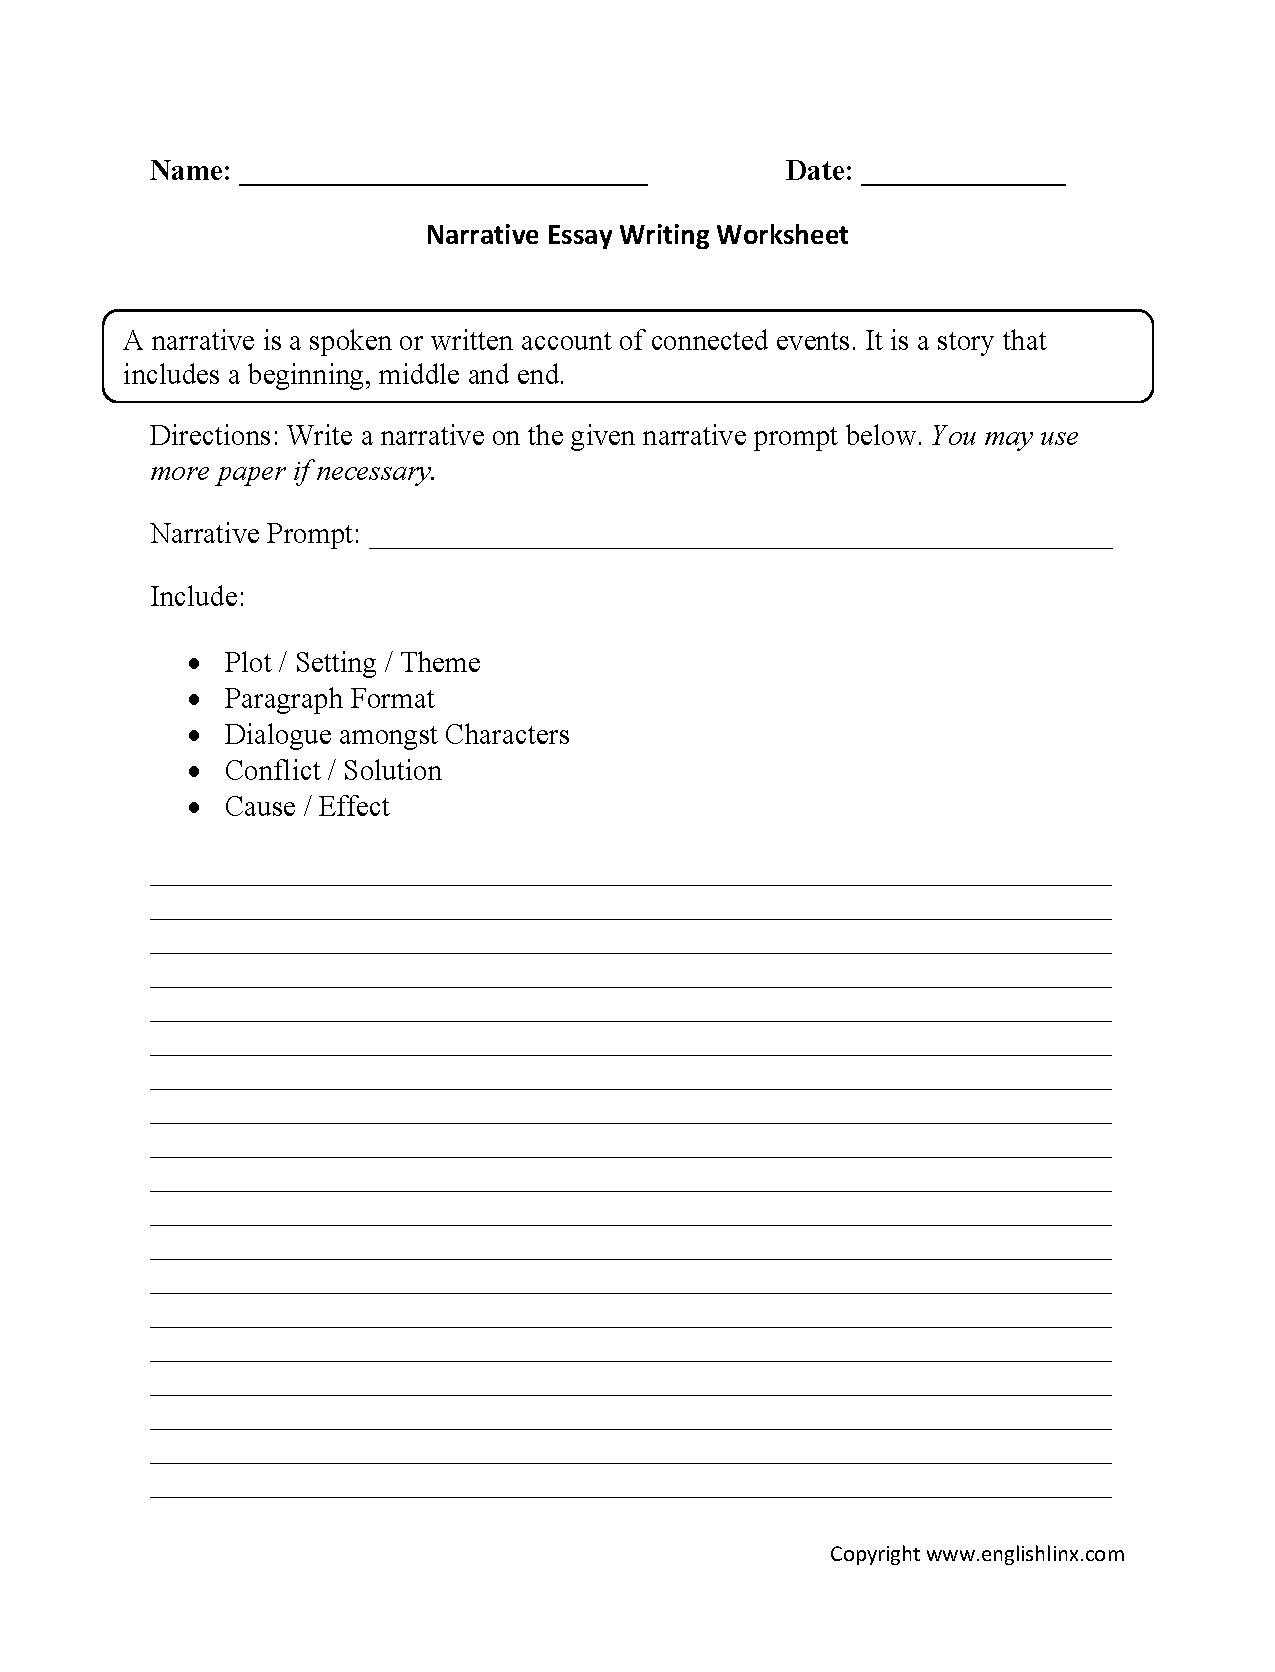 Narrative Writing Lesson Plans